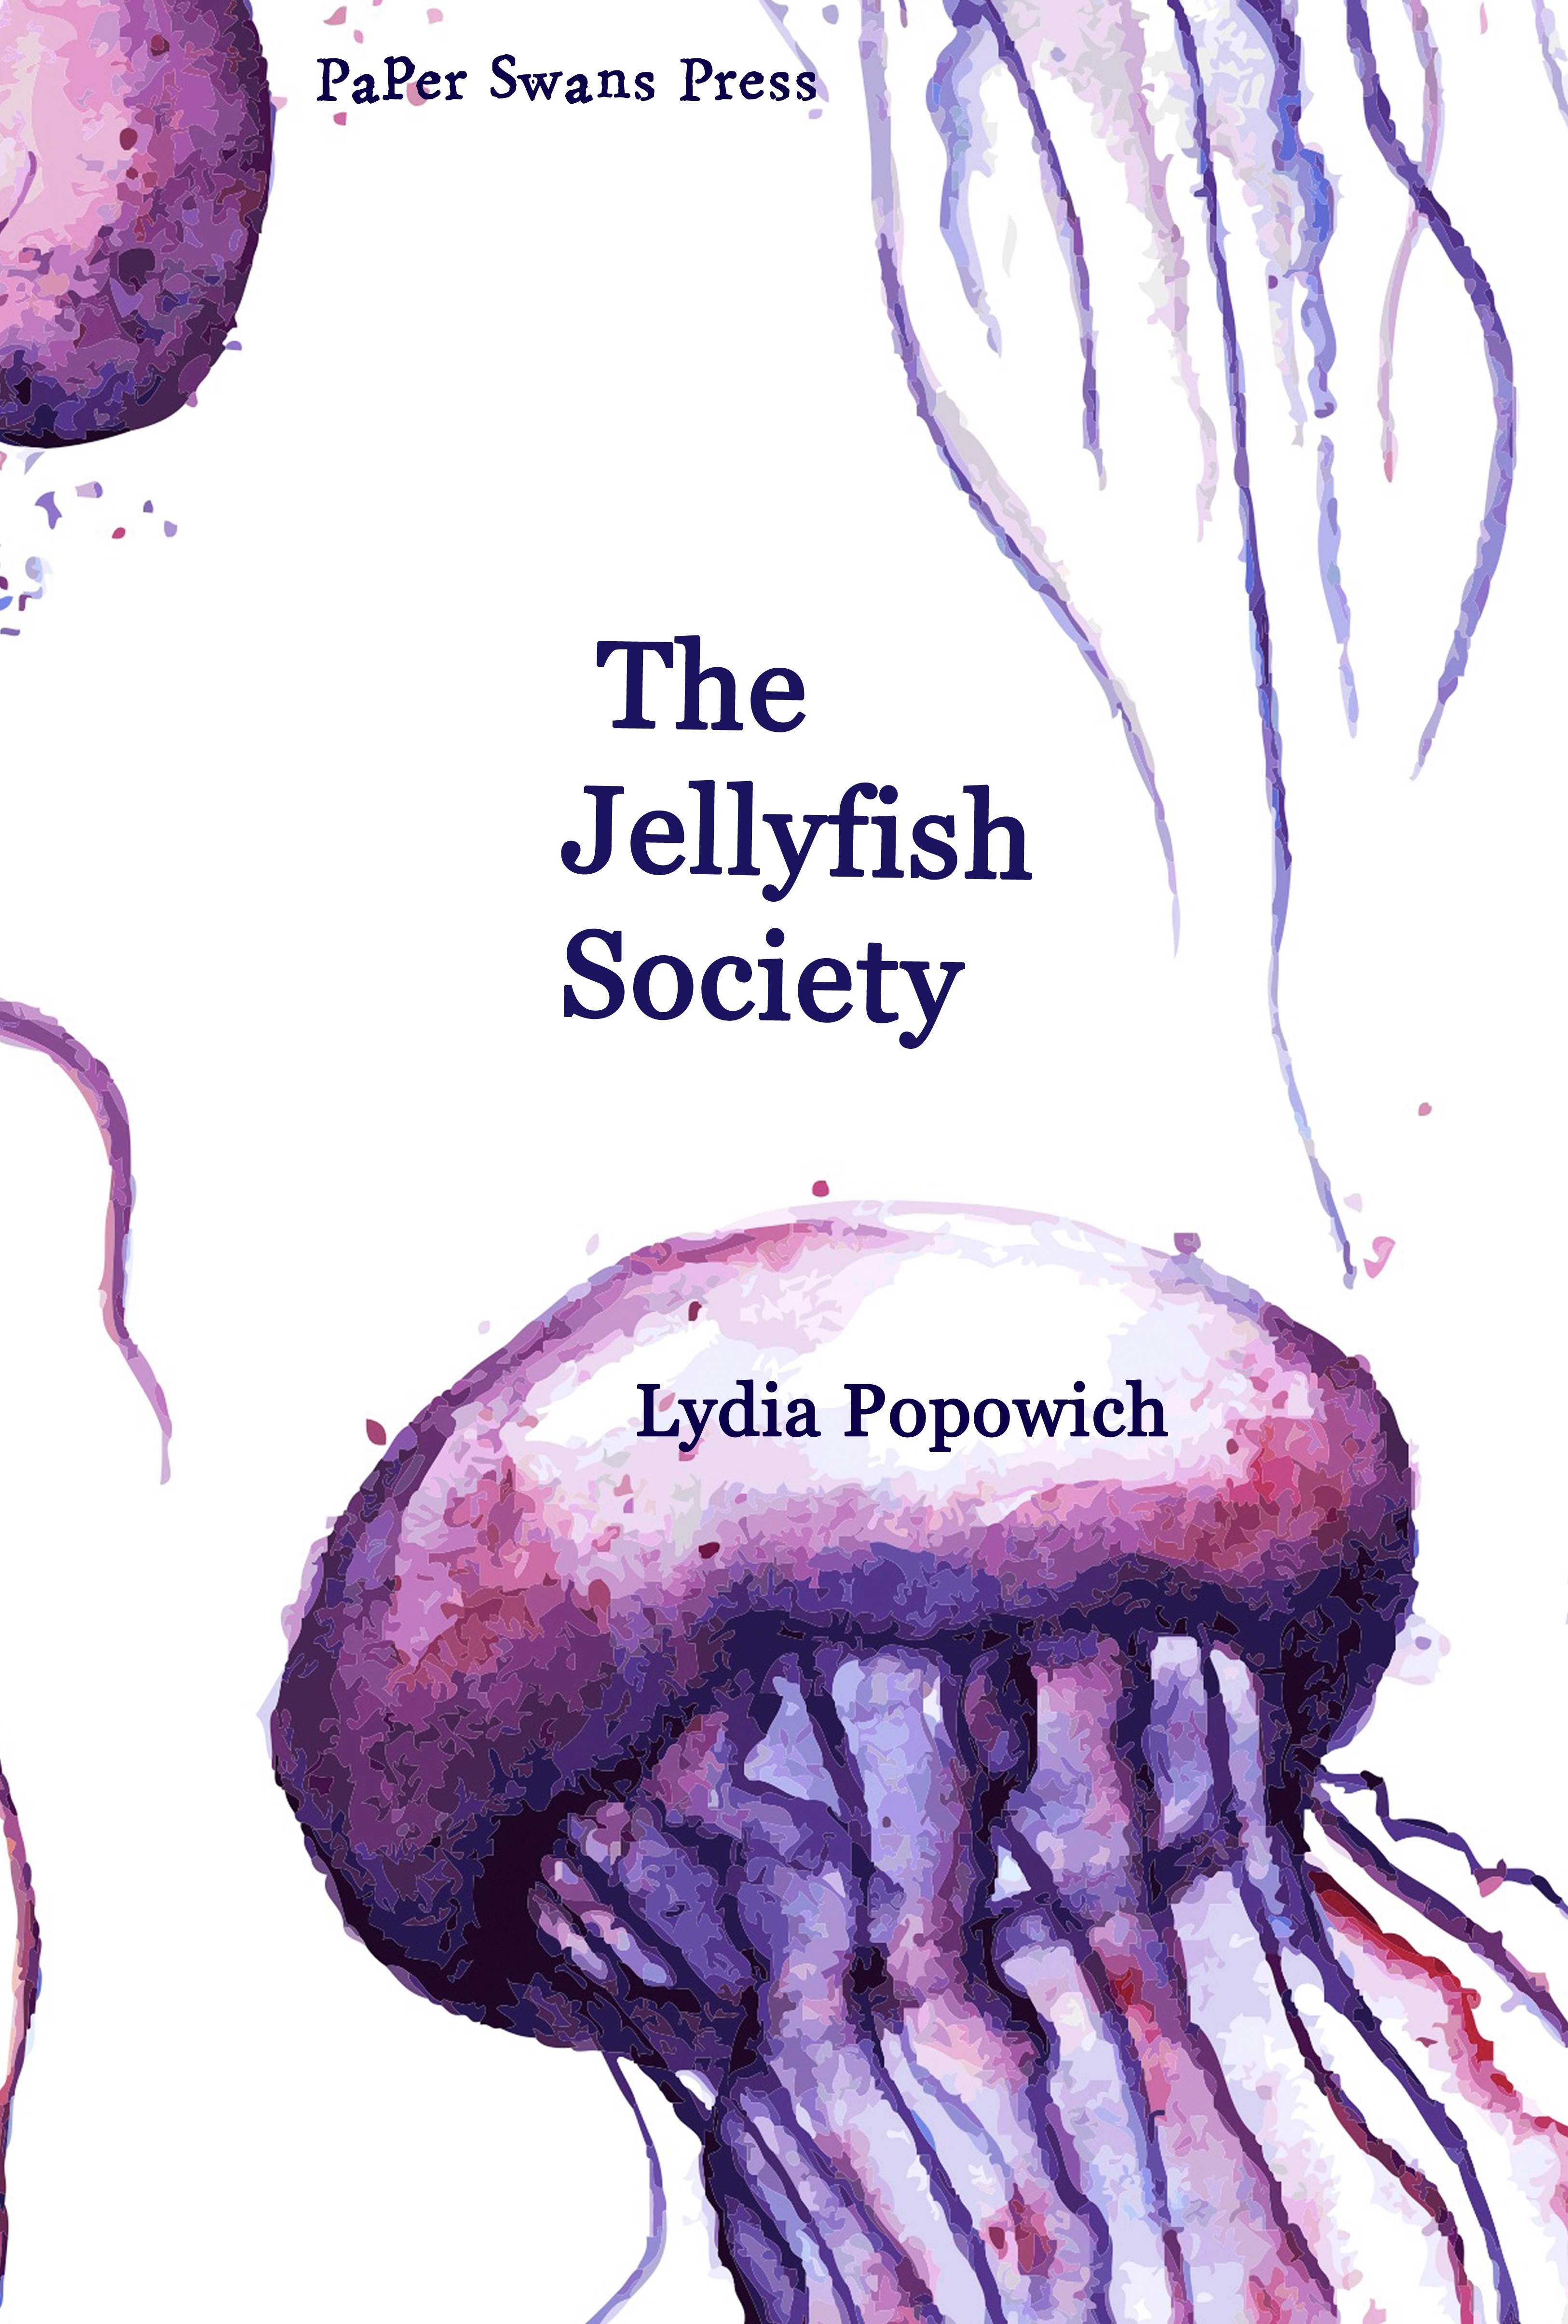 The Jellyfish Society